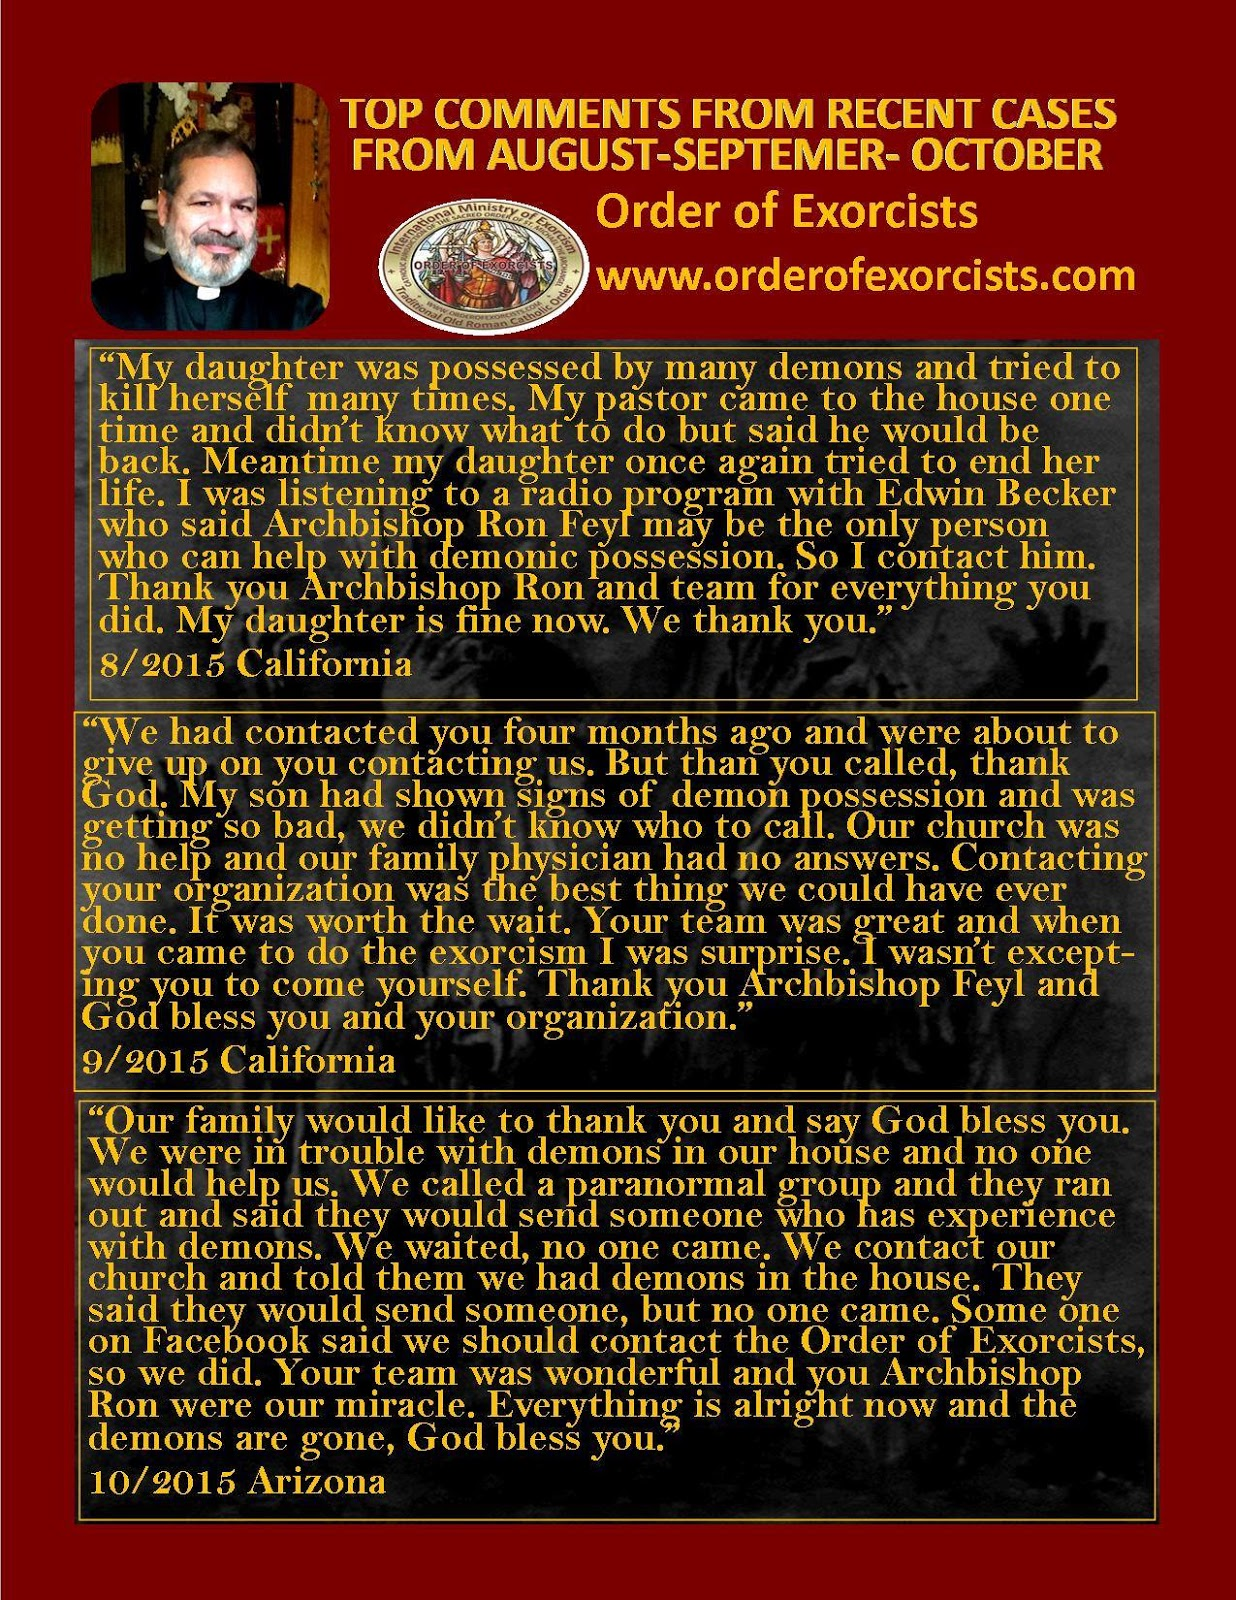 Order of exorcists the sacred order of saint michael the archangel the declaration of war has been made from archbishop ron feyl and the warrior members of the order of exorcists solutioingenieria Images